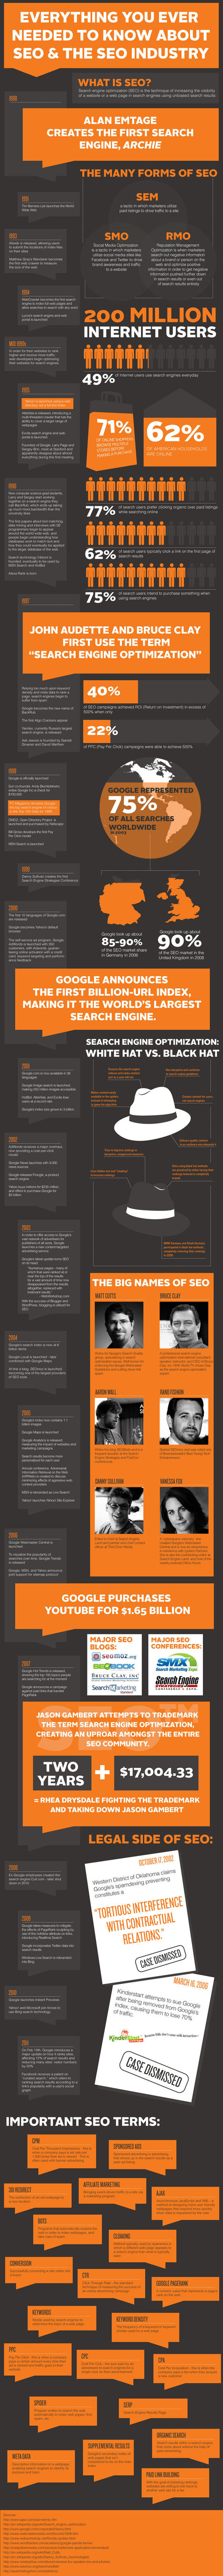 Infographie : Le monde du SEO - Abondance | Web marketing review | Scoop.it